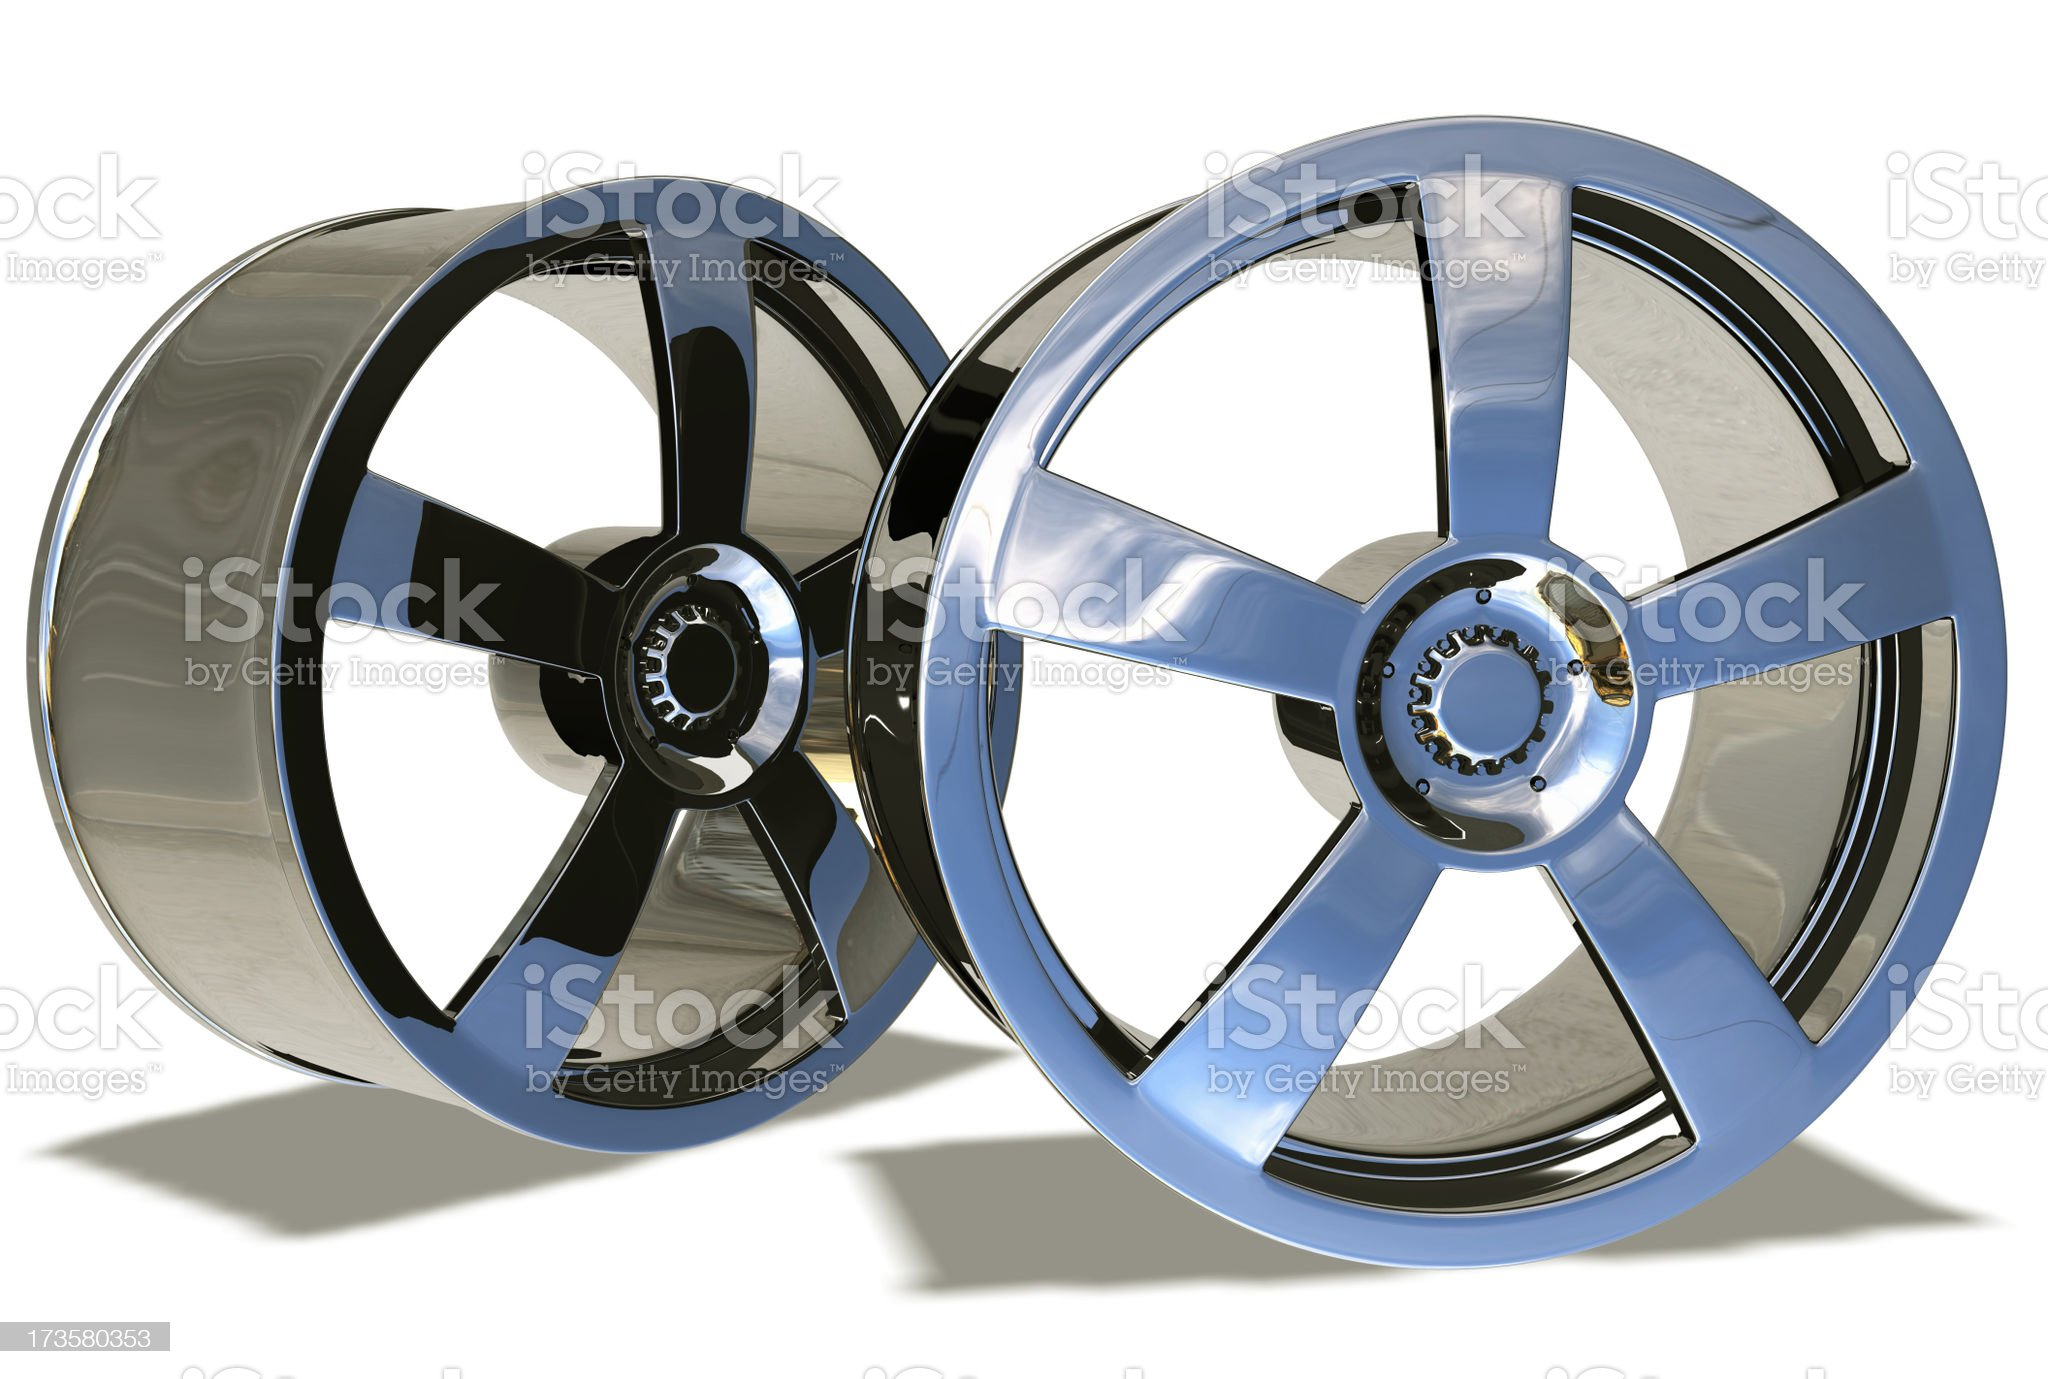 Two alloy car rims royalty-free stock photo